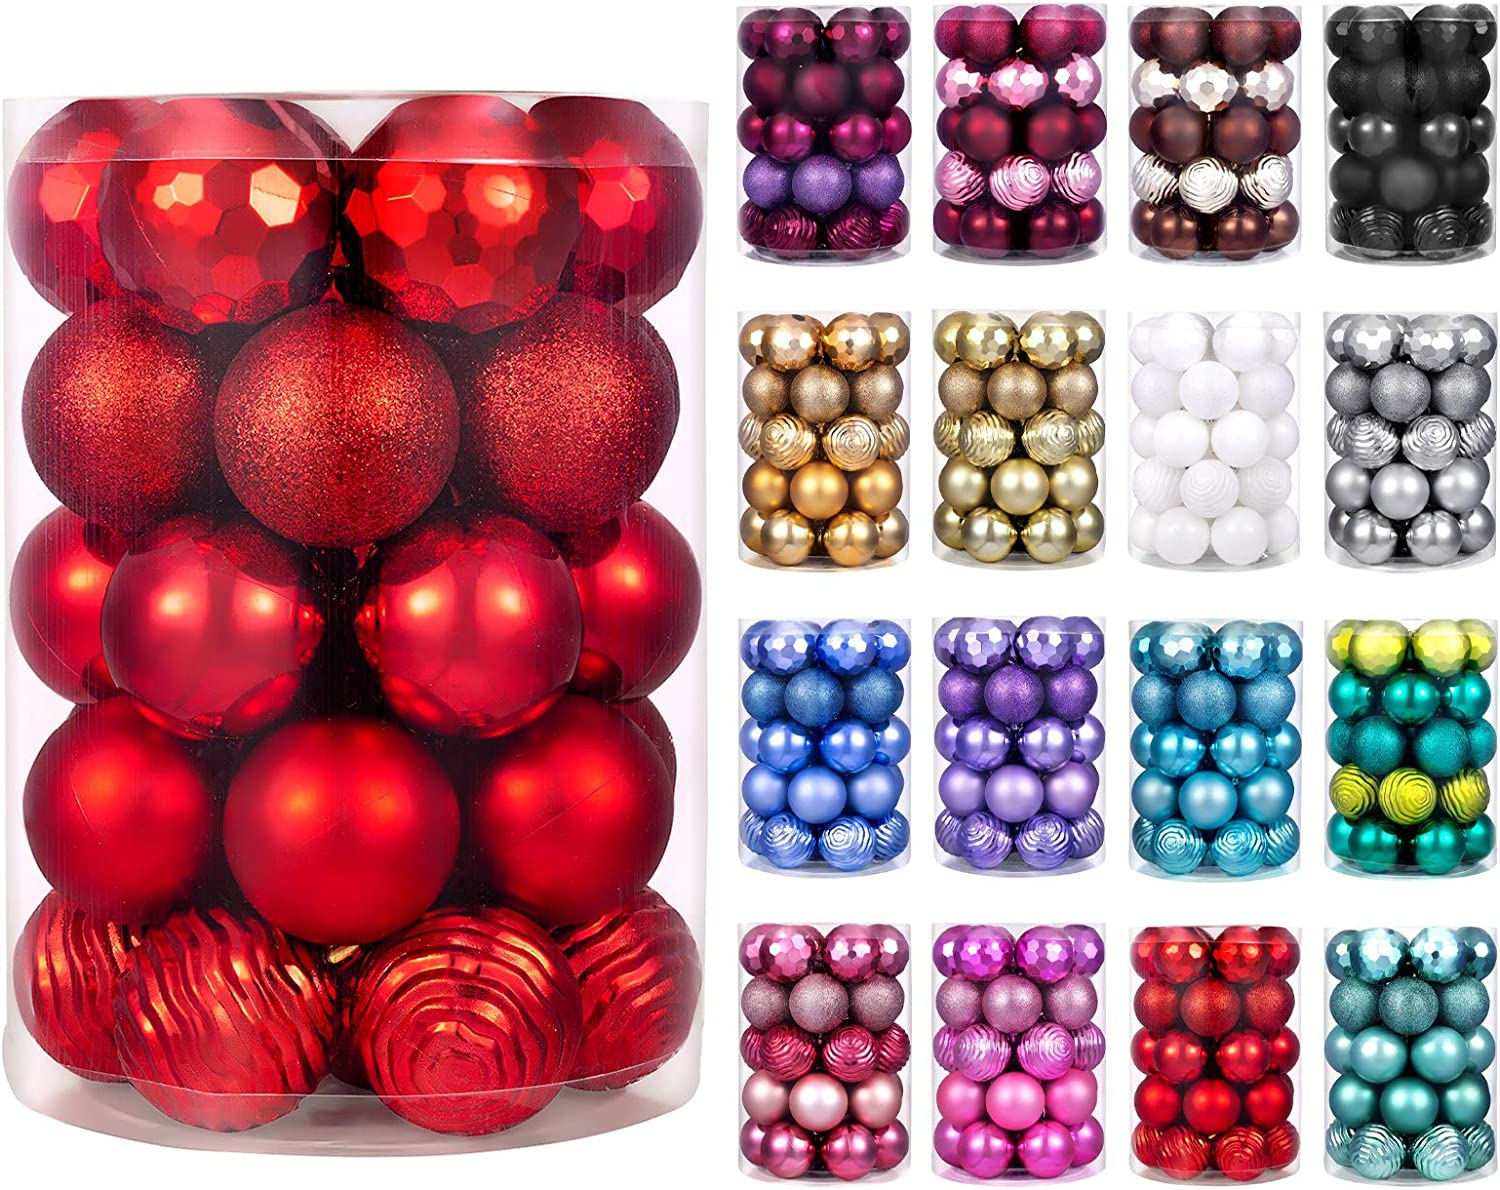 "XmasExp 60mm/2.36"" Christmas Ball Ornaments Shatterproof Christmas Ornaments Set Decorations for Xmas Tree Balls - 34ct (2.36'', Red)"